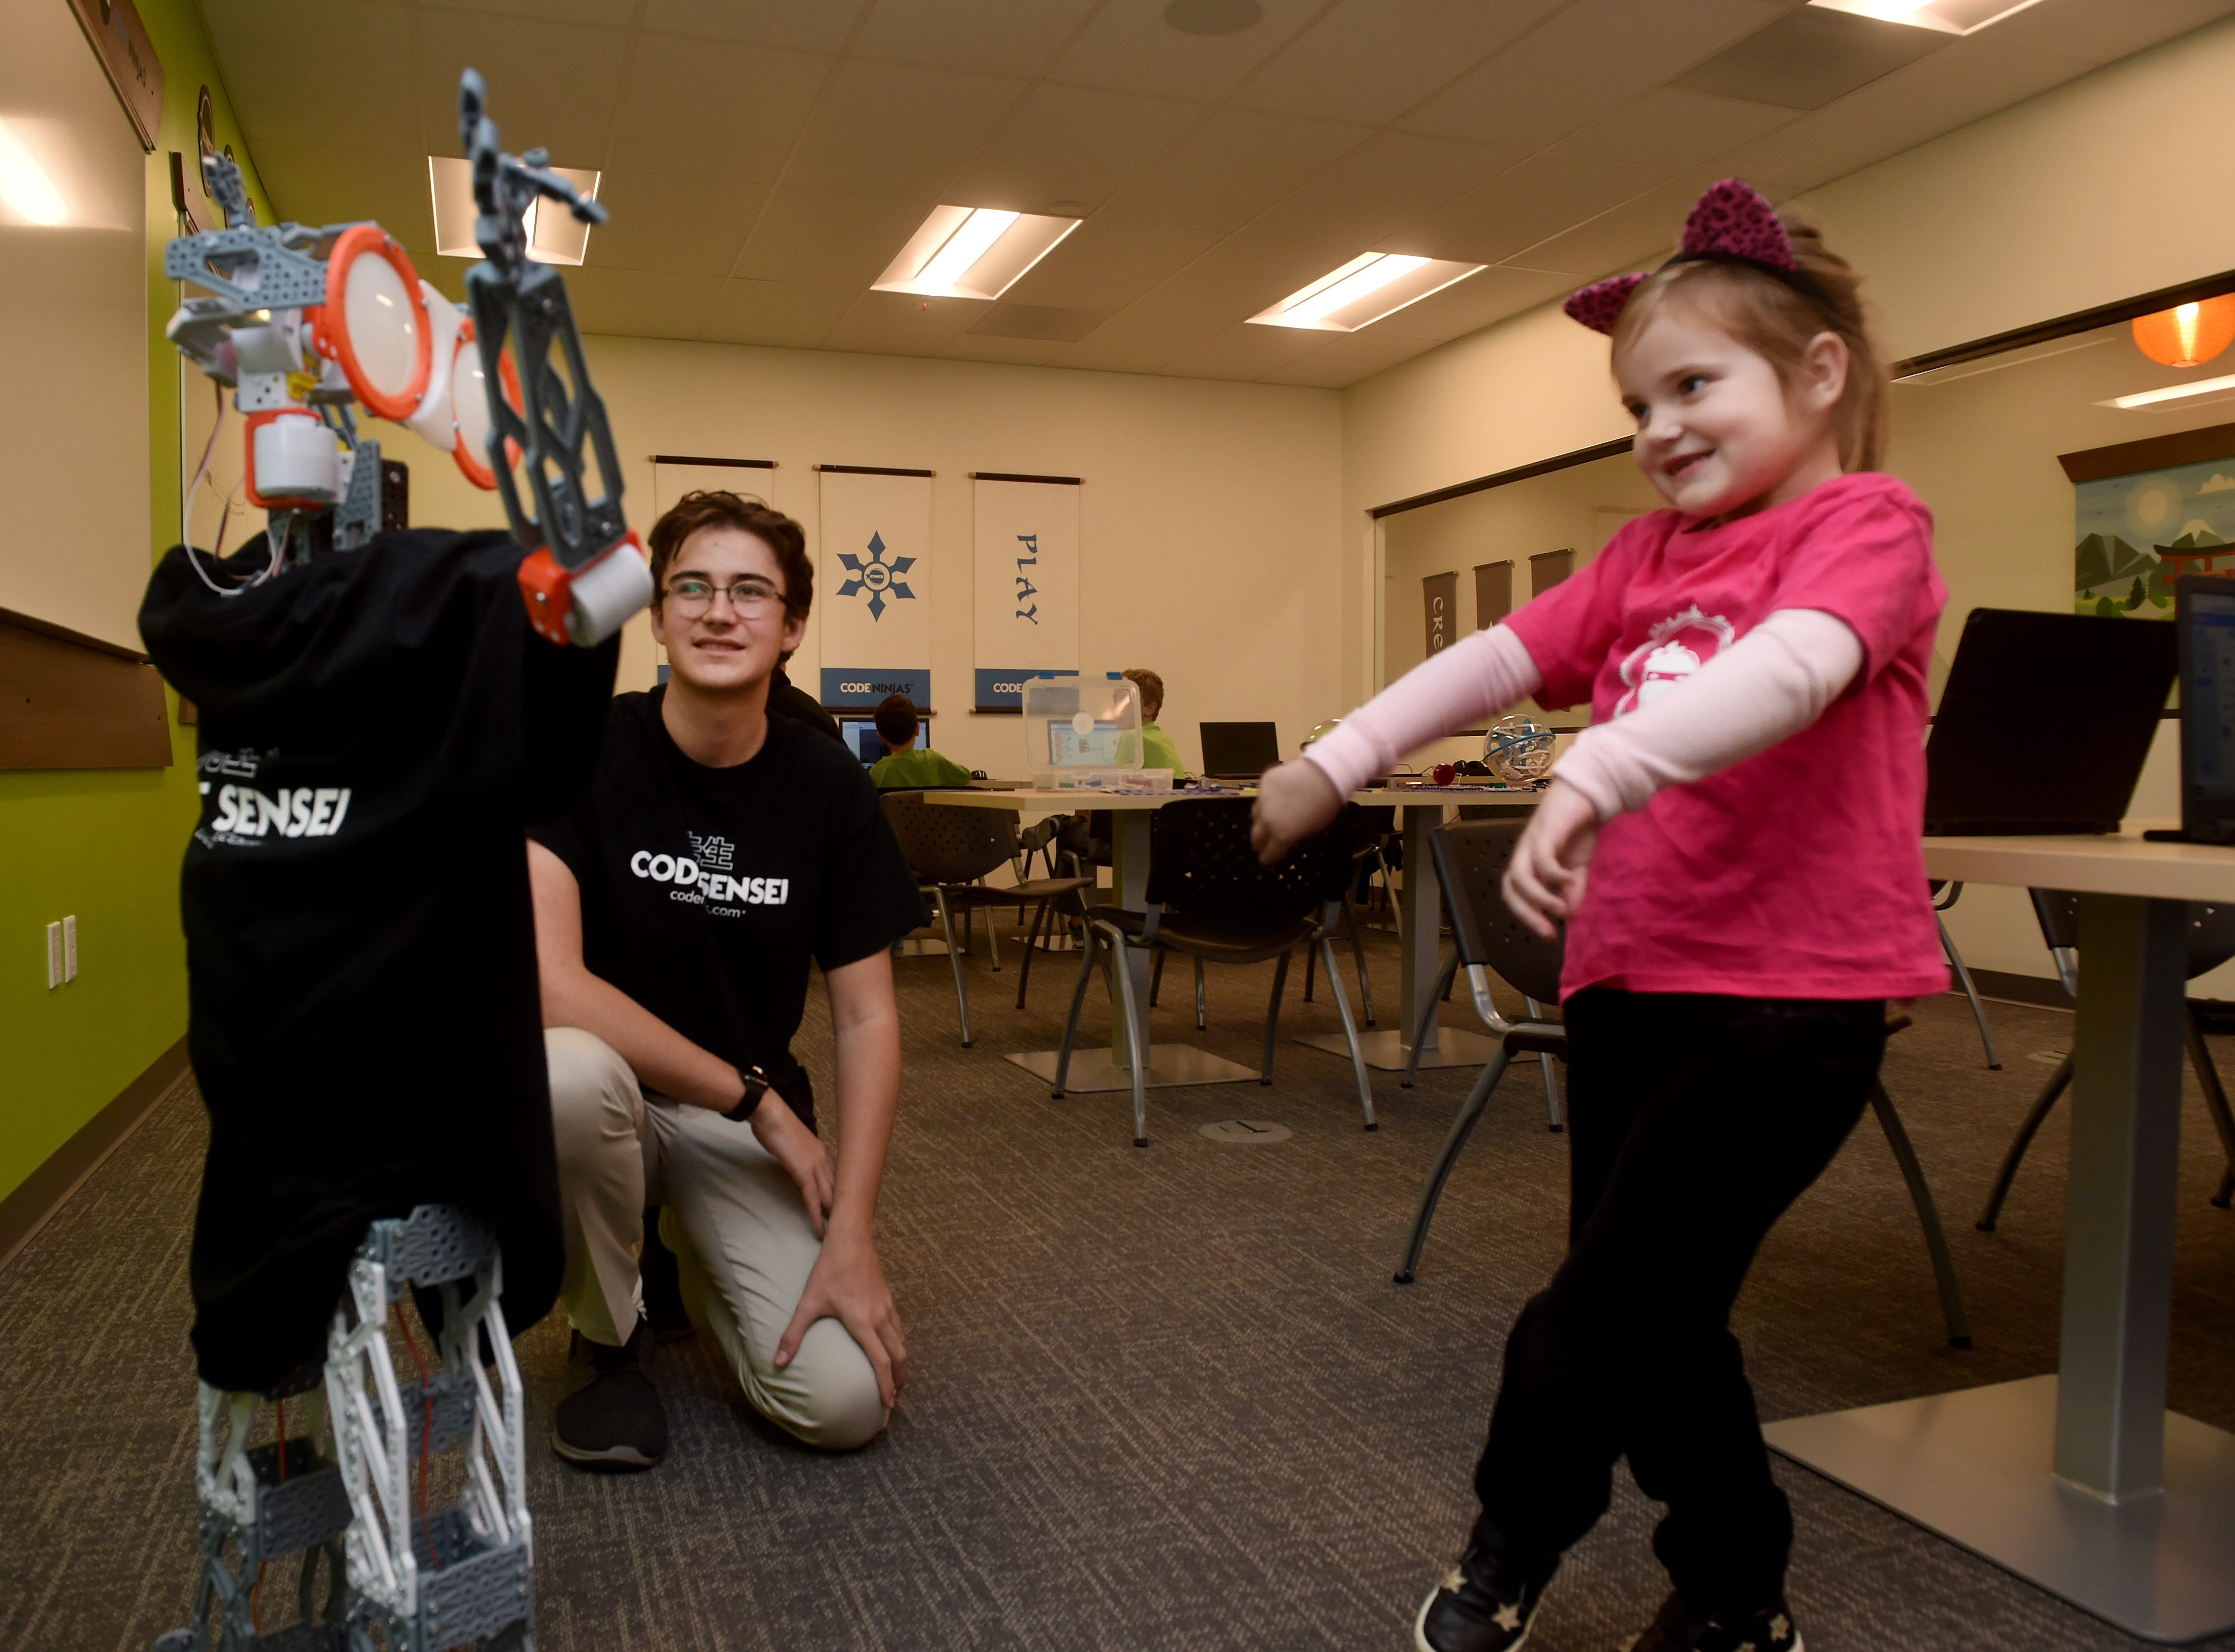 Sensei Zack Lown gives vocal commands to a robot as Coco Schulz dances with the robot at the new Code Ninjas dojo in Thousand Oaks. The facility is the first of its kind in Ventura County and the fifth franchise site in California.